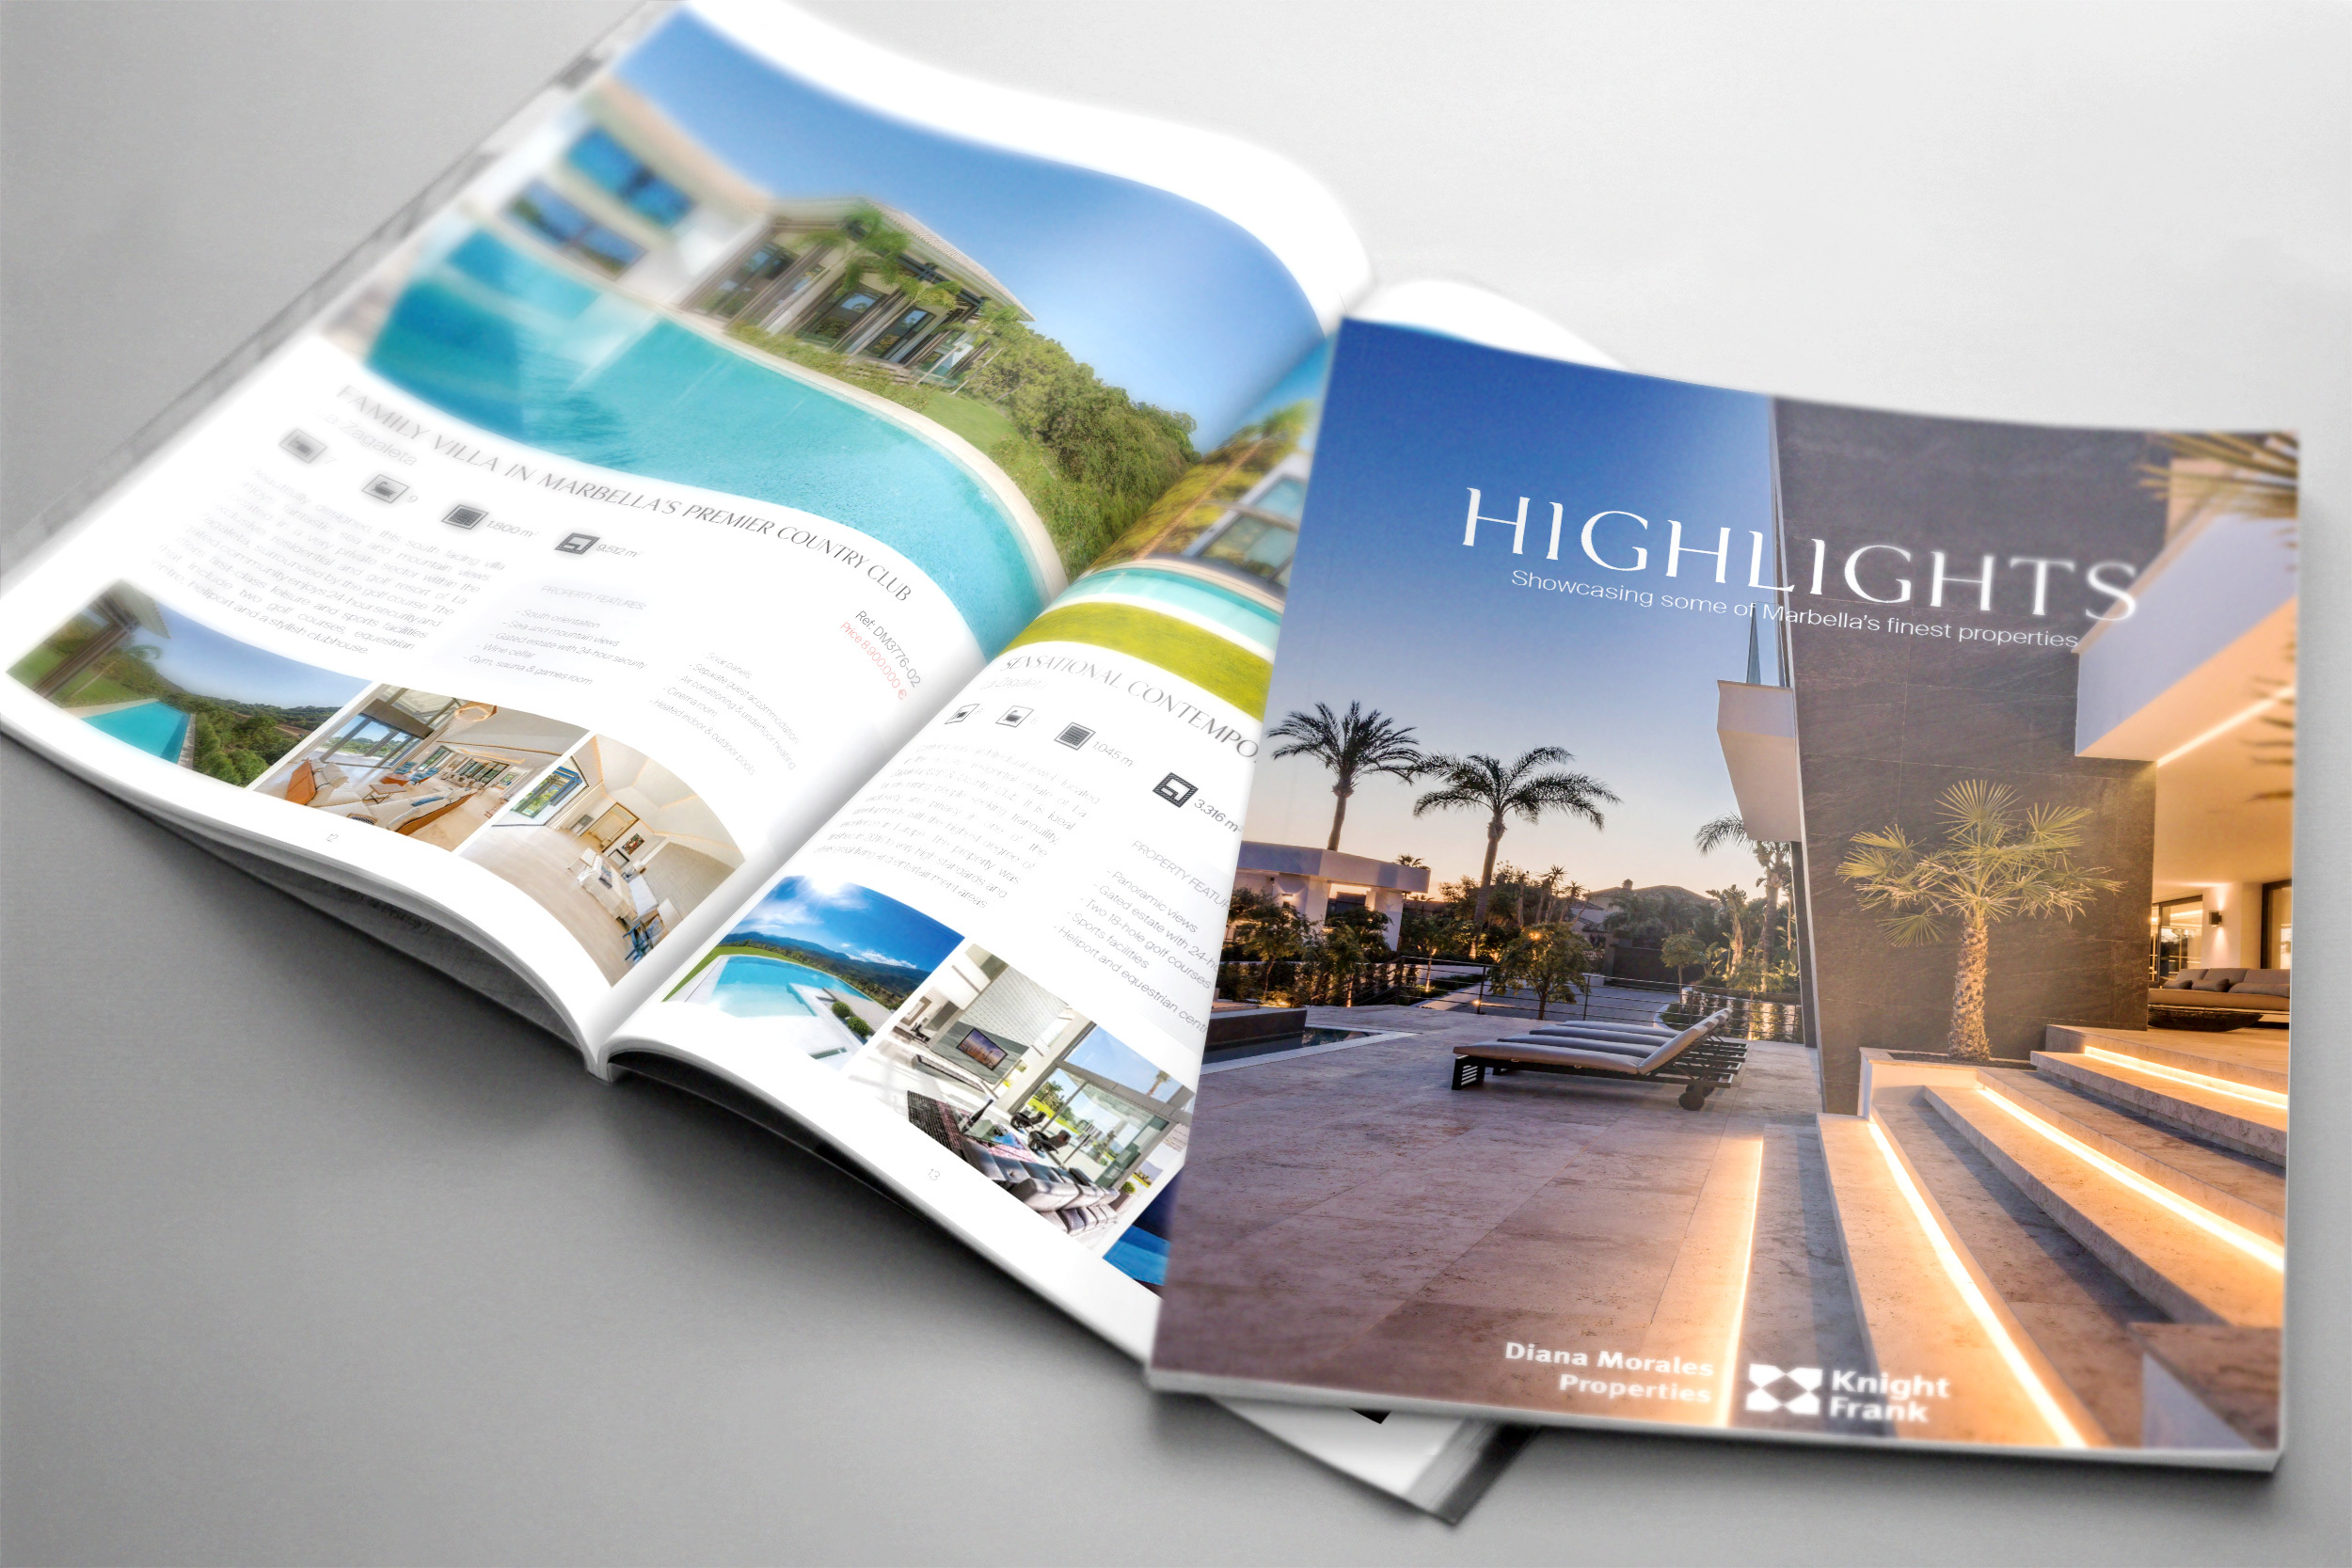 The 2017 edition of Highlights Marbella Property Magazine out now!